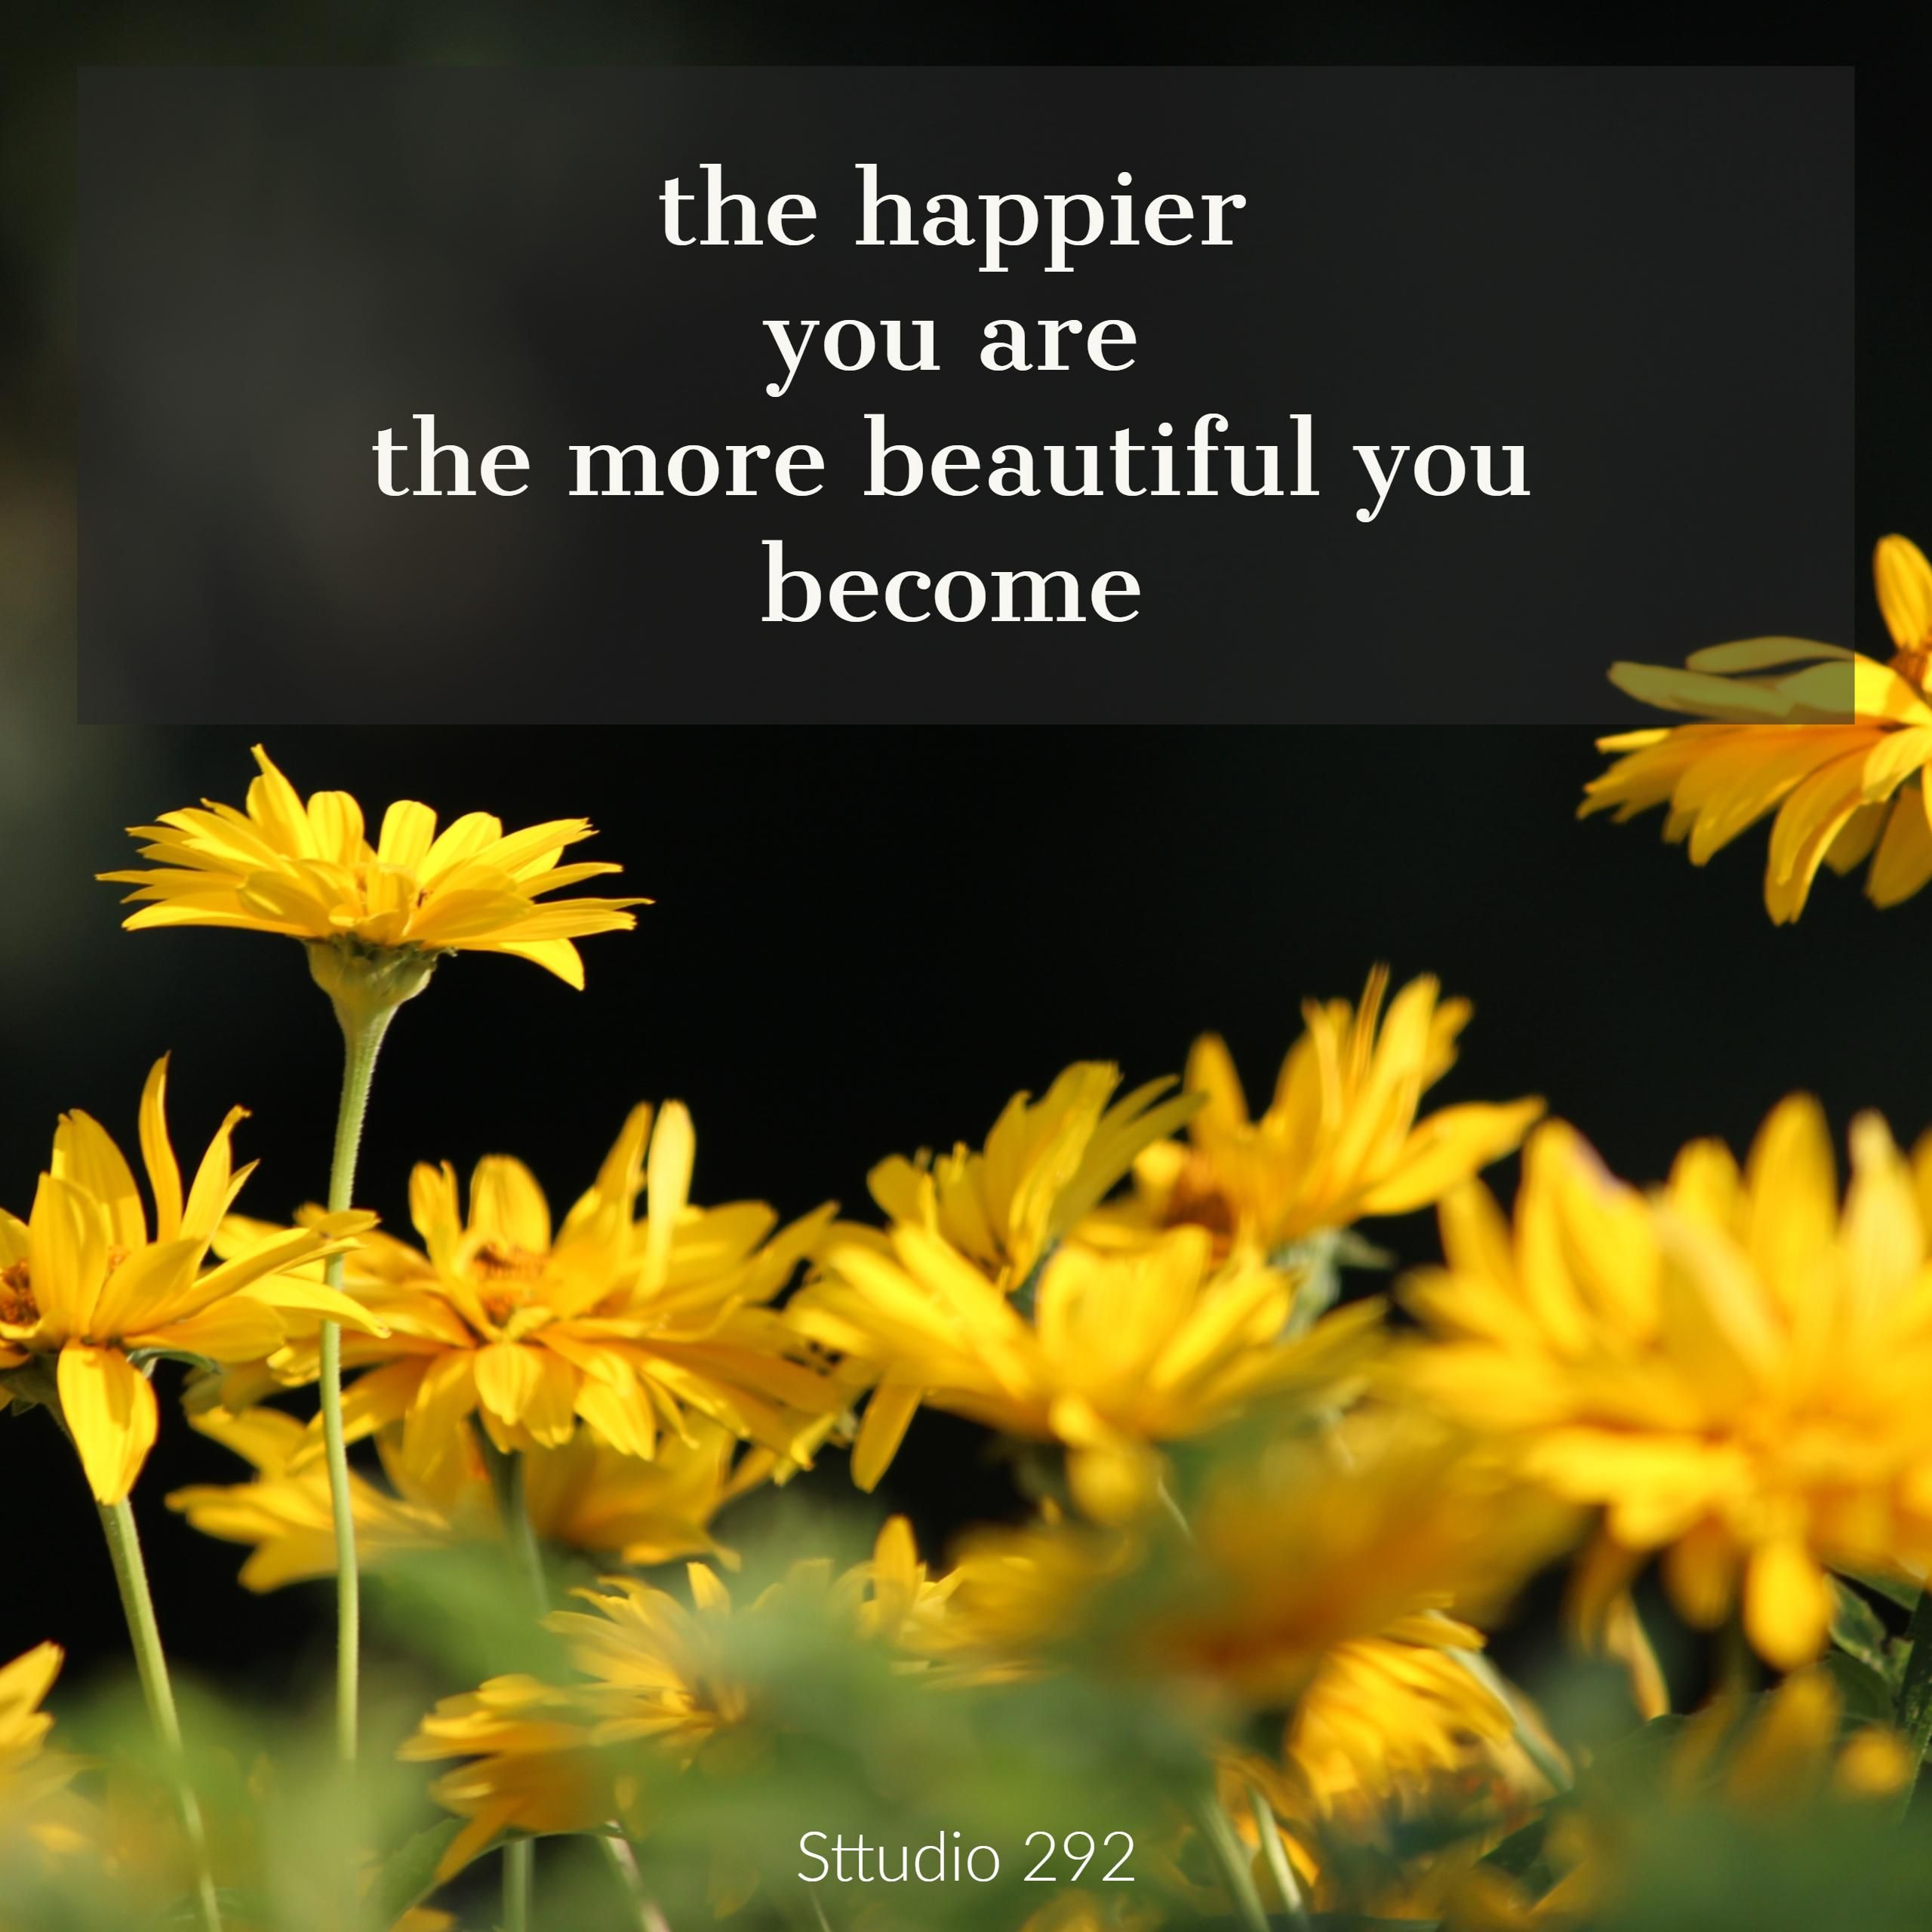 Beautiful Yellow Daisy Flowers Quotes On Happiness With Flower